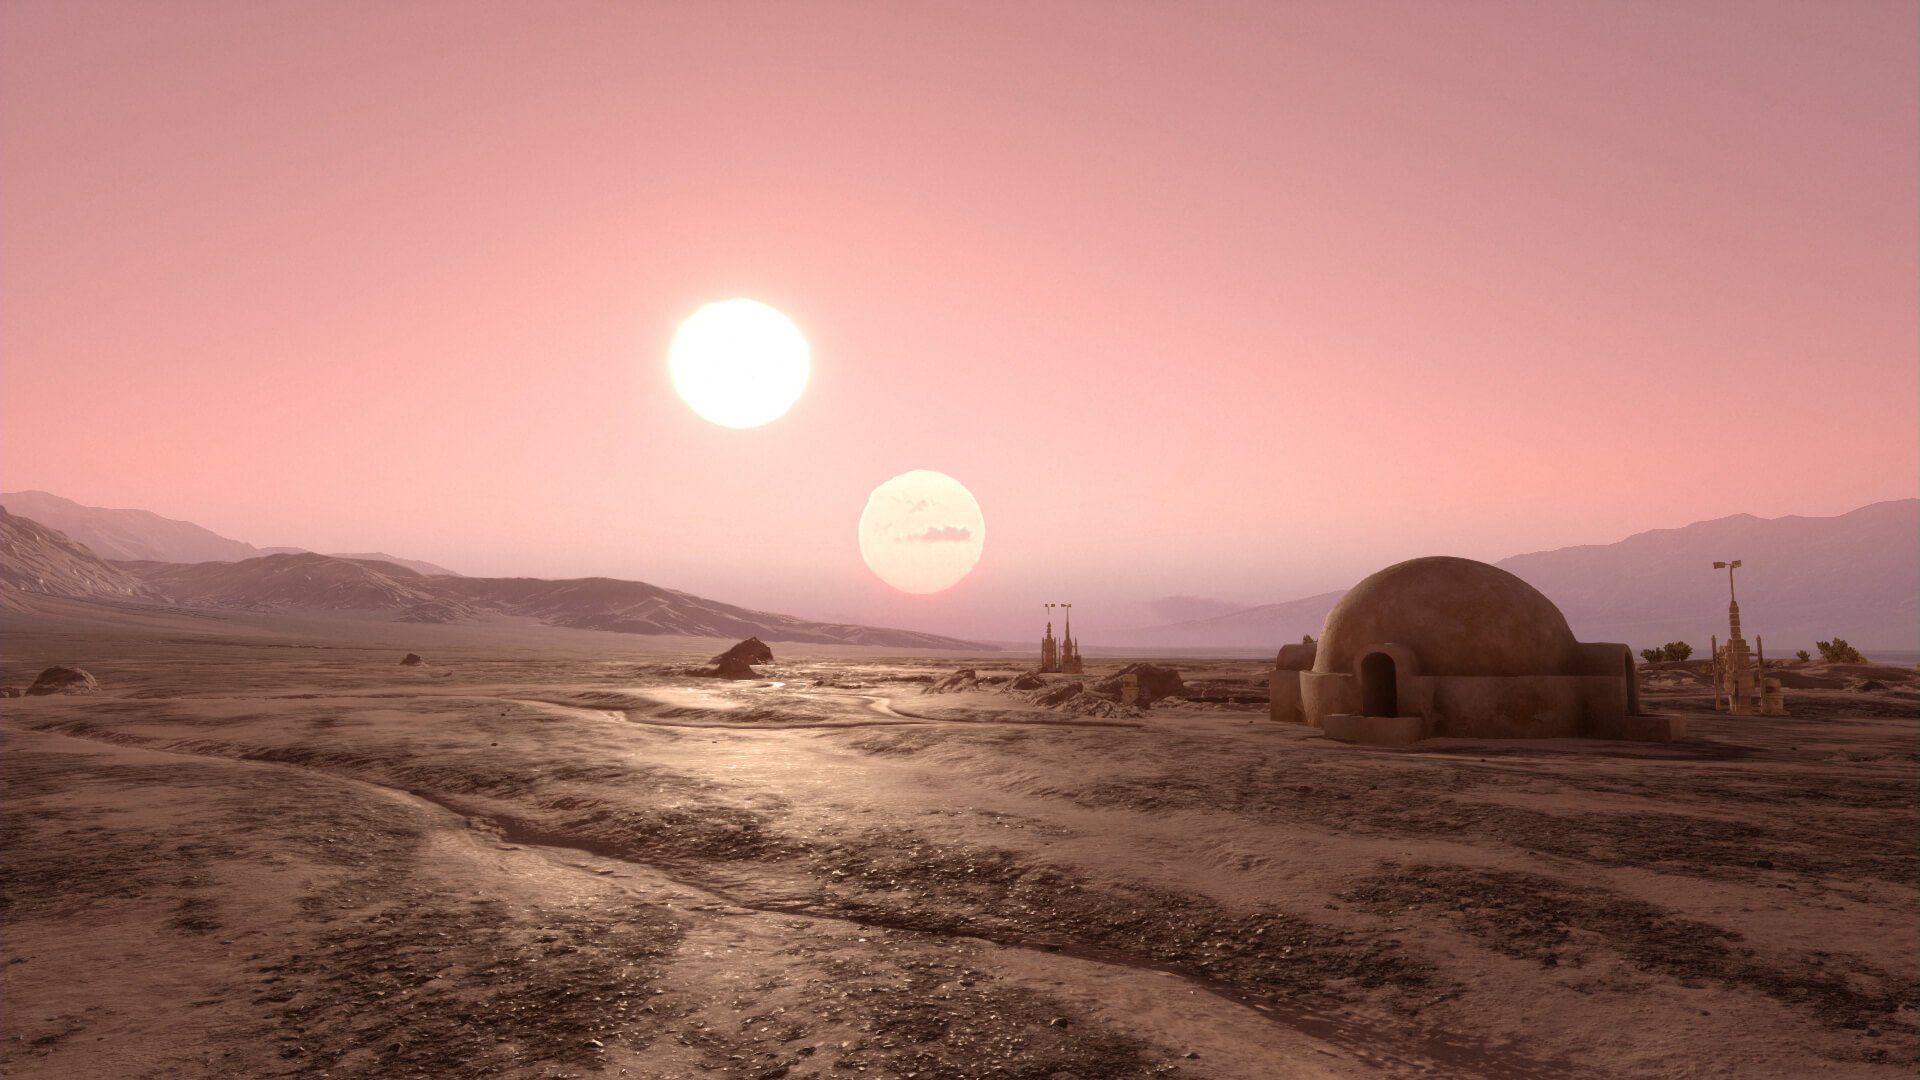 Tatooine Tunisia Wallpaper by HD Wallpapers Daily